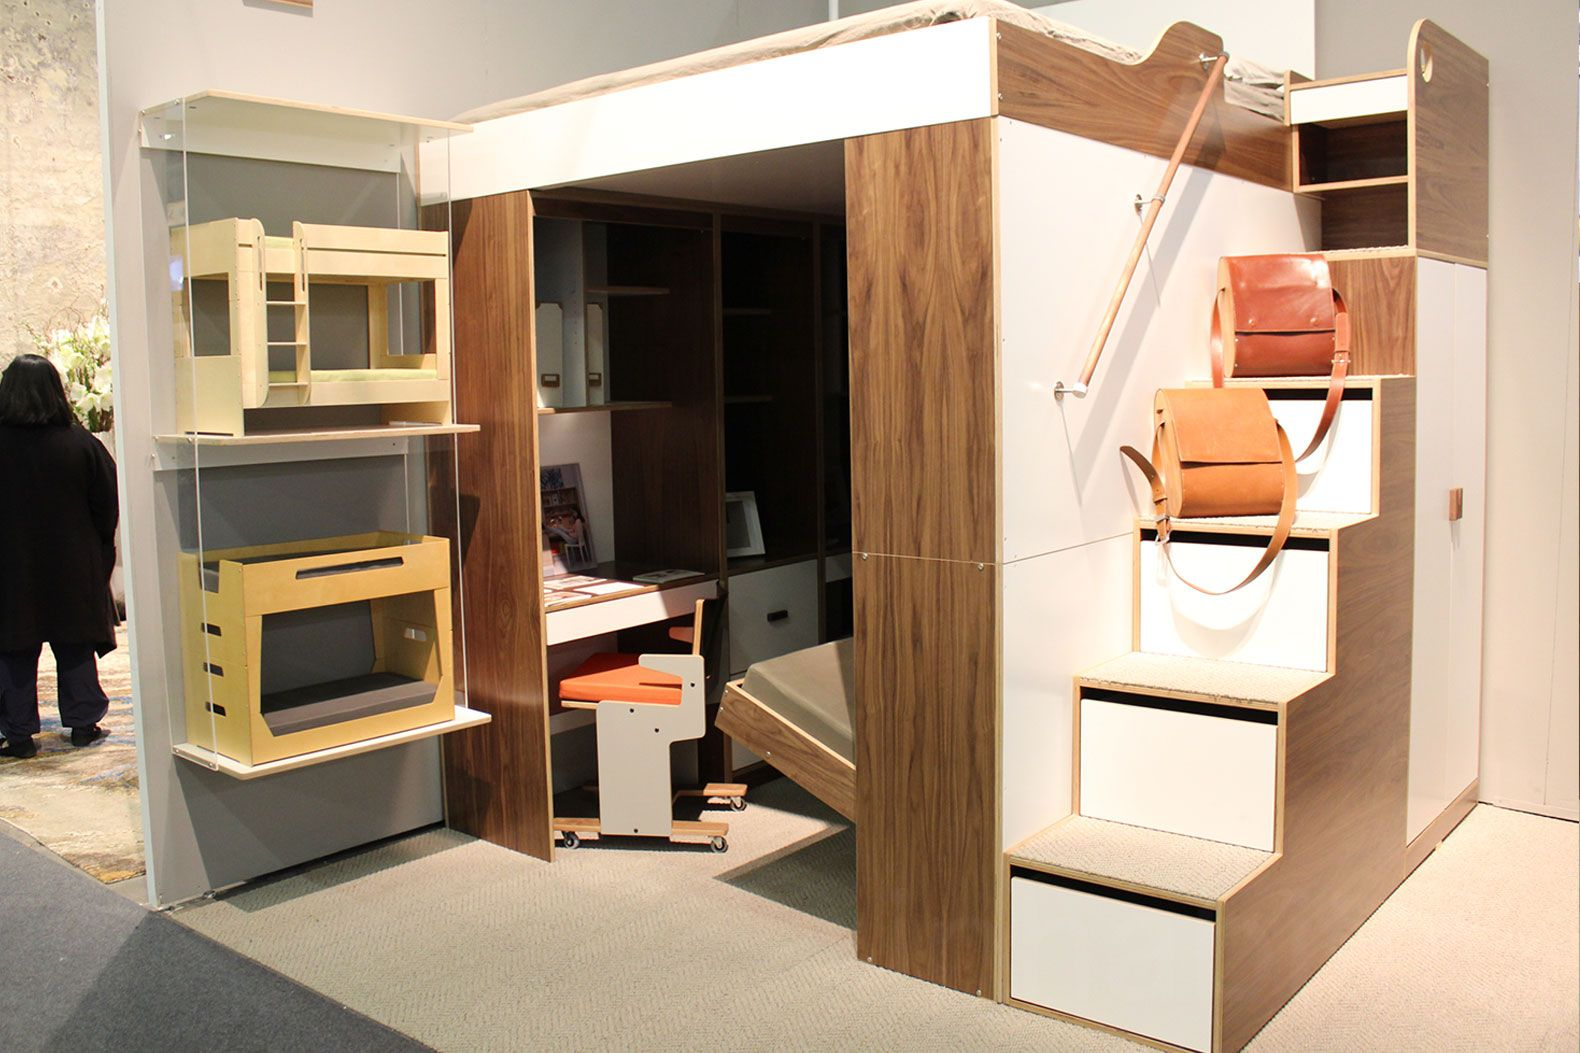 See inside NYC's first micro apartment building ...